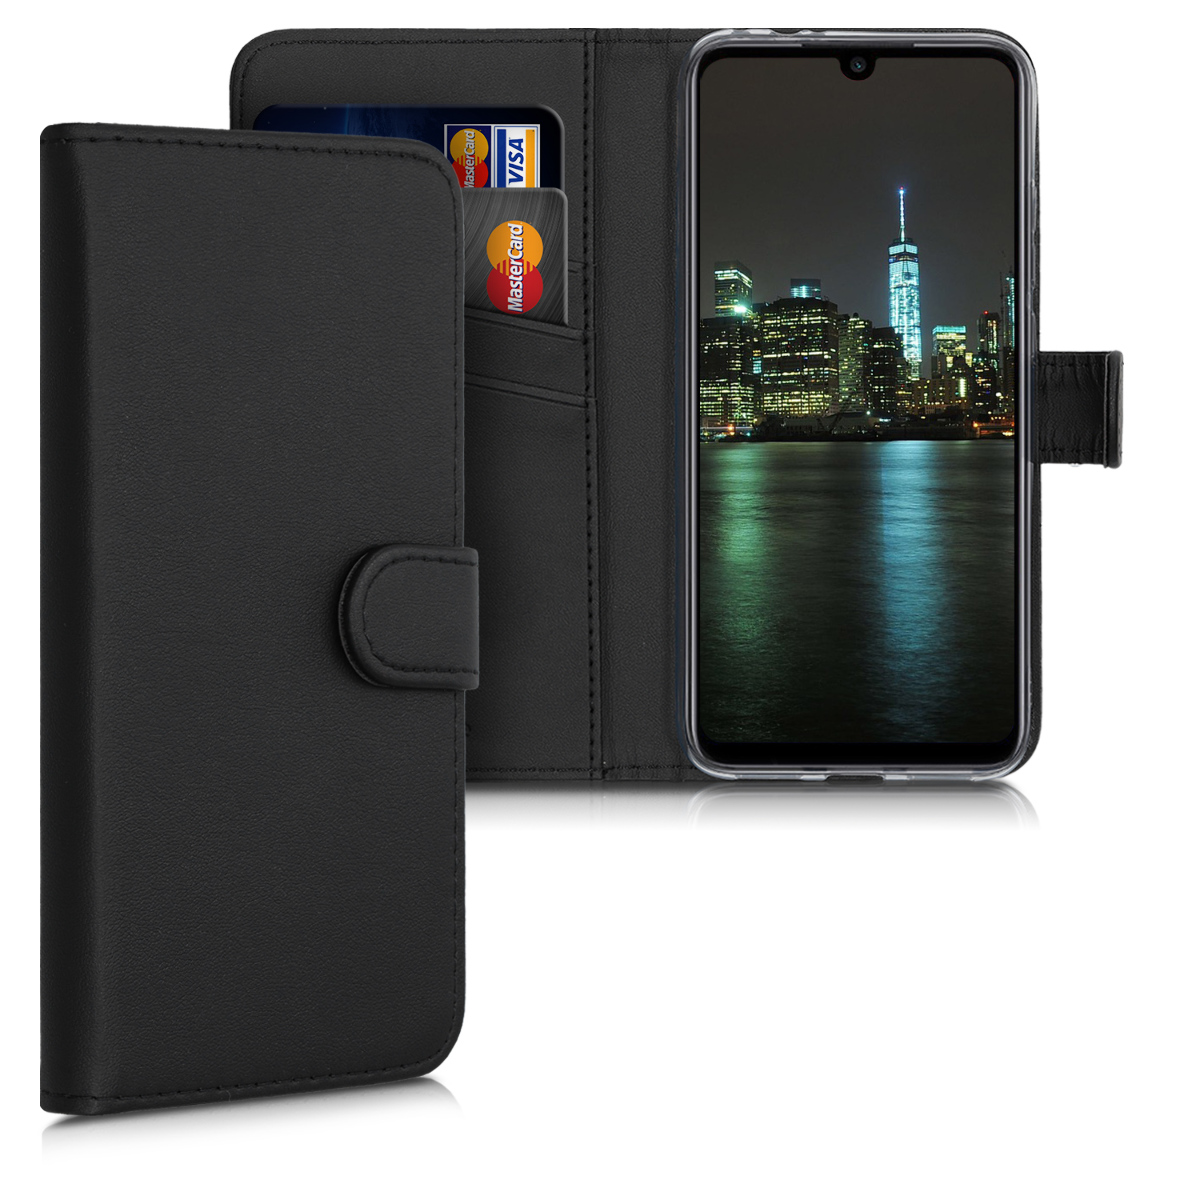 KW Θήκη - Πορτοφόλι Xiaomi Redmi Note 7 / Note 7 Pro - Protective Leather Flip Cover - Black (50034.01)